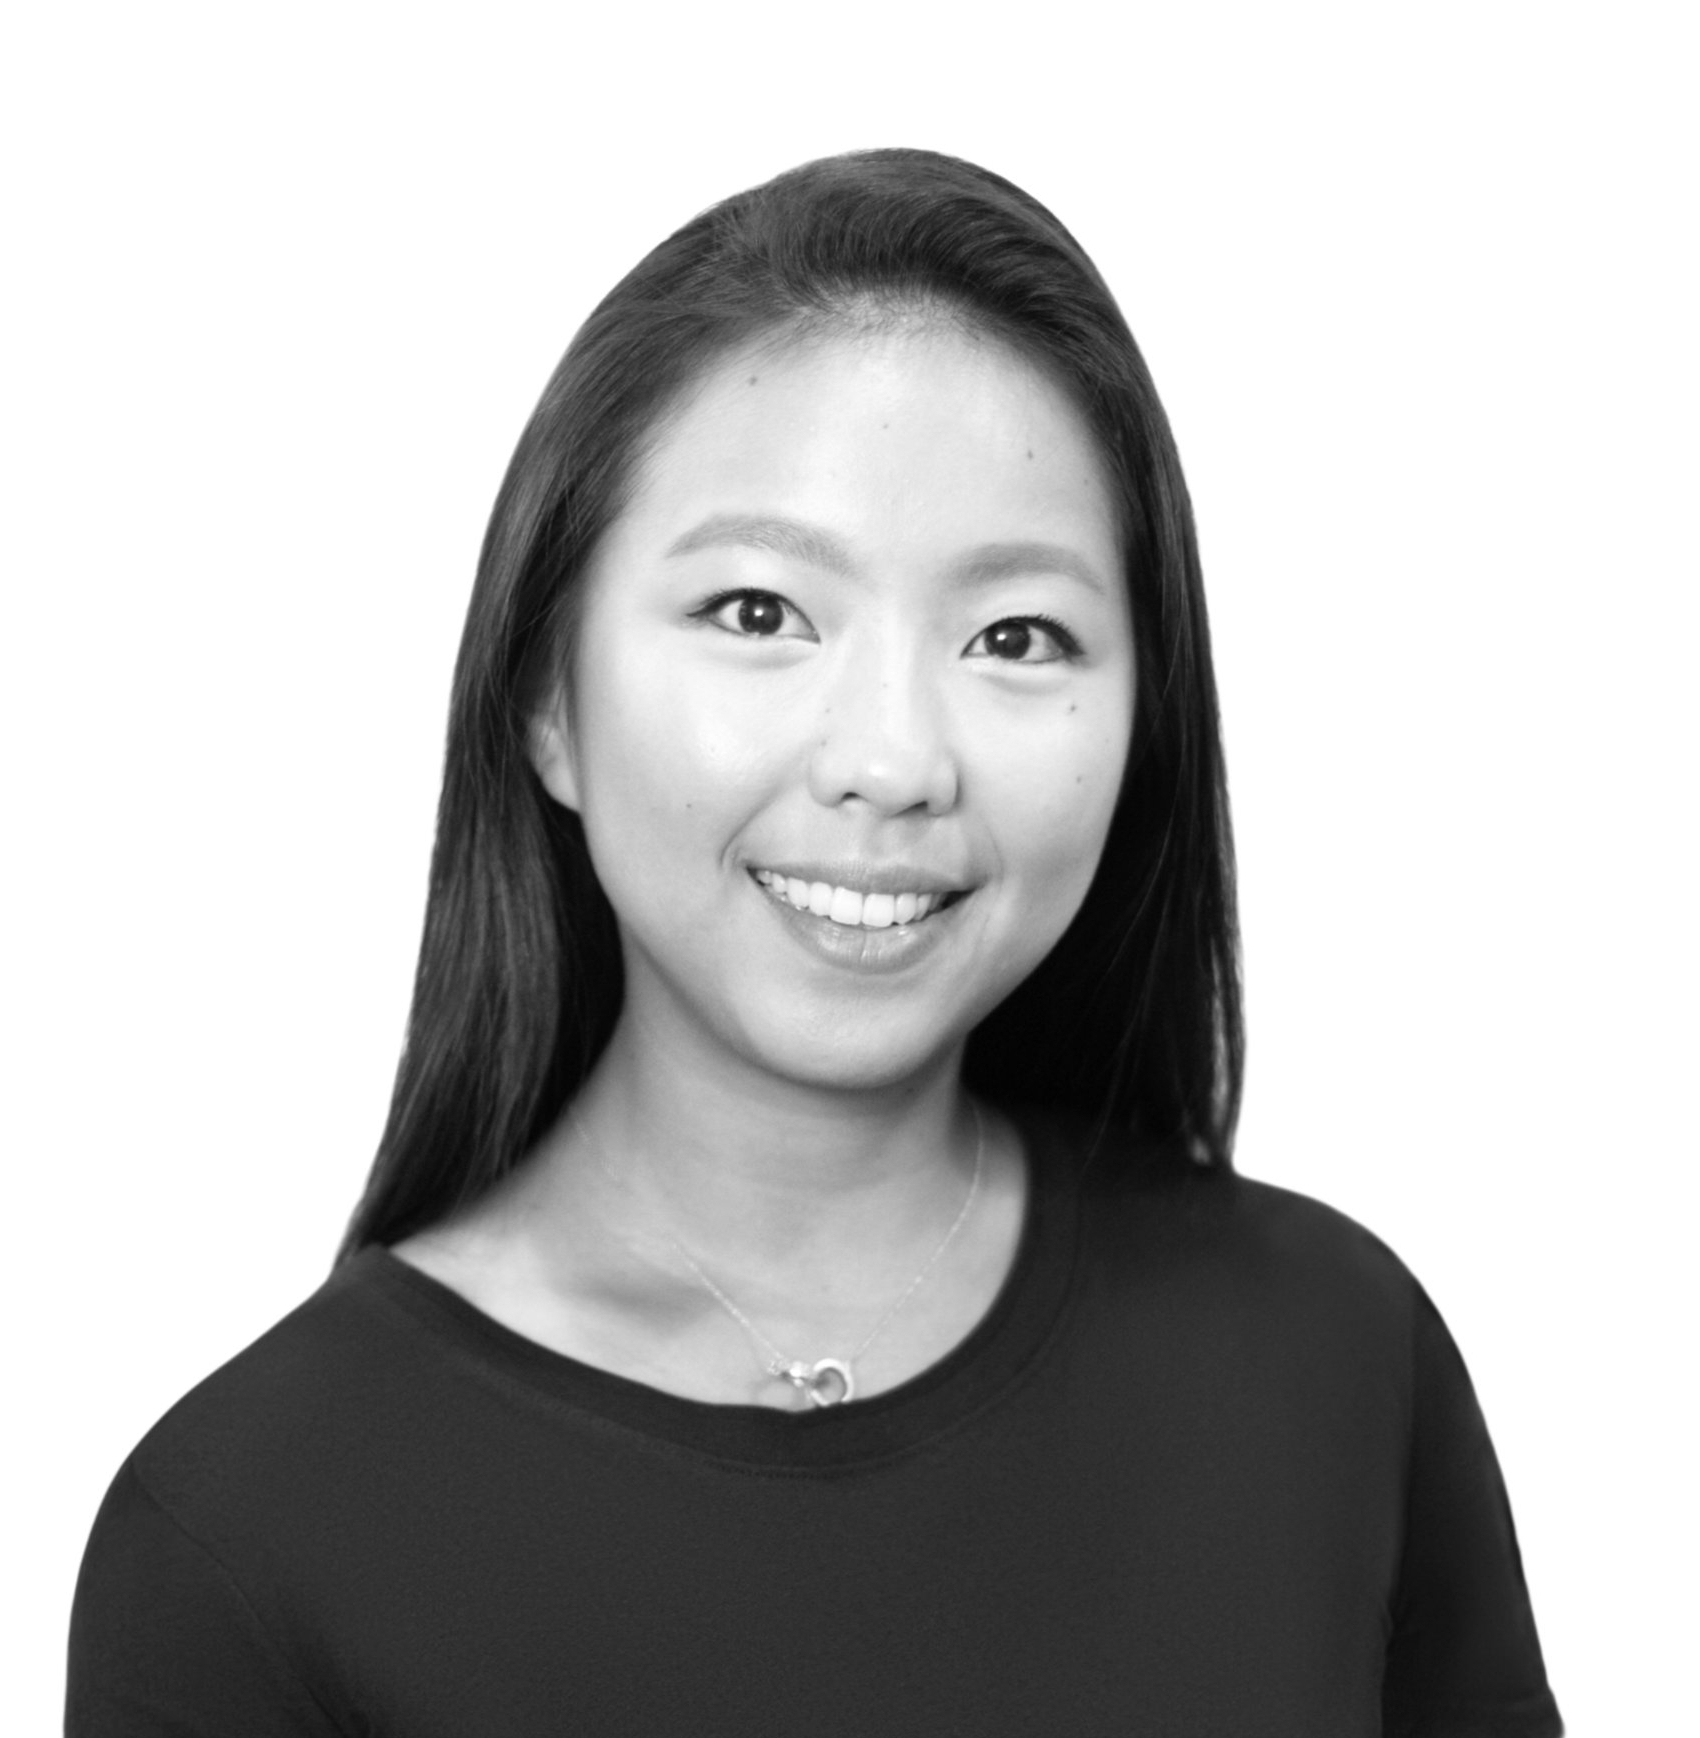 Annabelle Huang  Asia Growth  Annabelle was an FX Structurer at Deutsche Bank before joining Nomura where she advised on FX and Rates risk solutions. She is a graduate of Carnegie Mellon University with a degree in Mathematics and Finance.   LinkedIn  |  Twitter